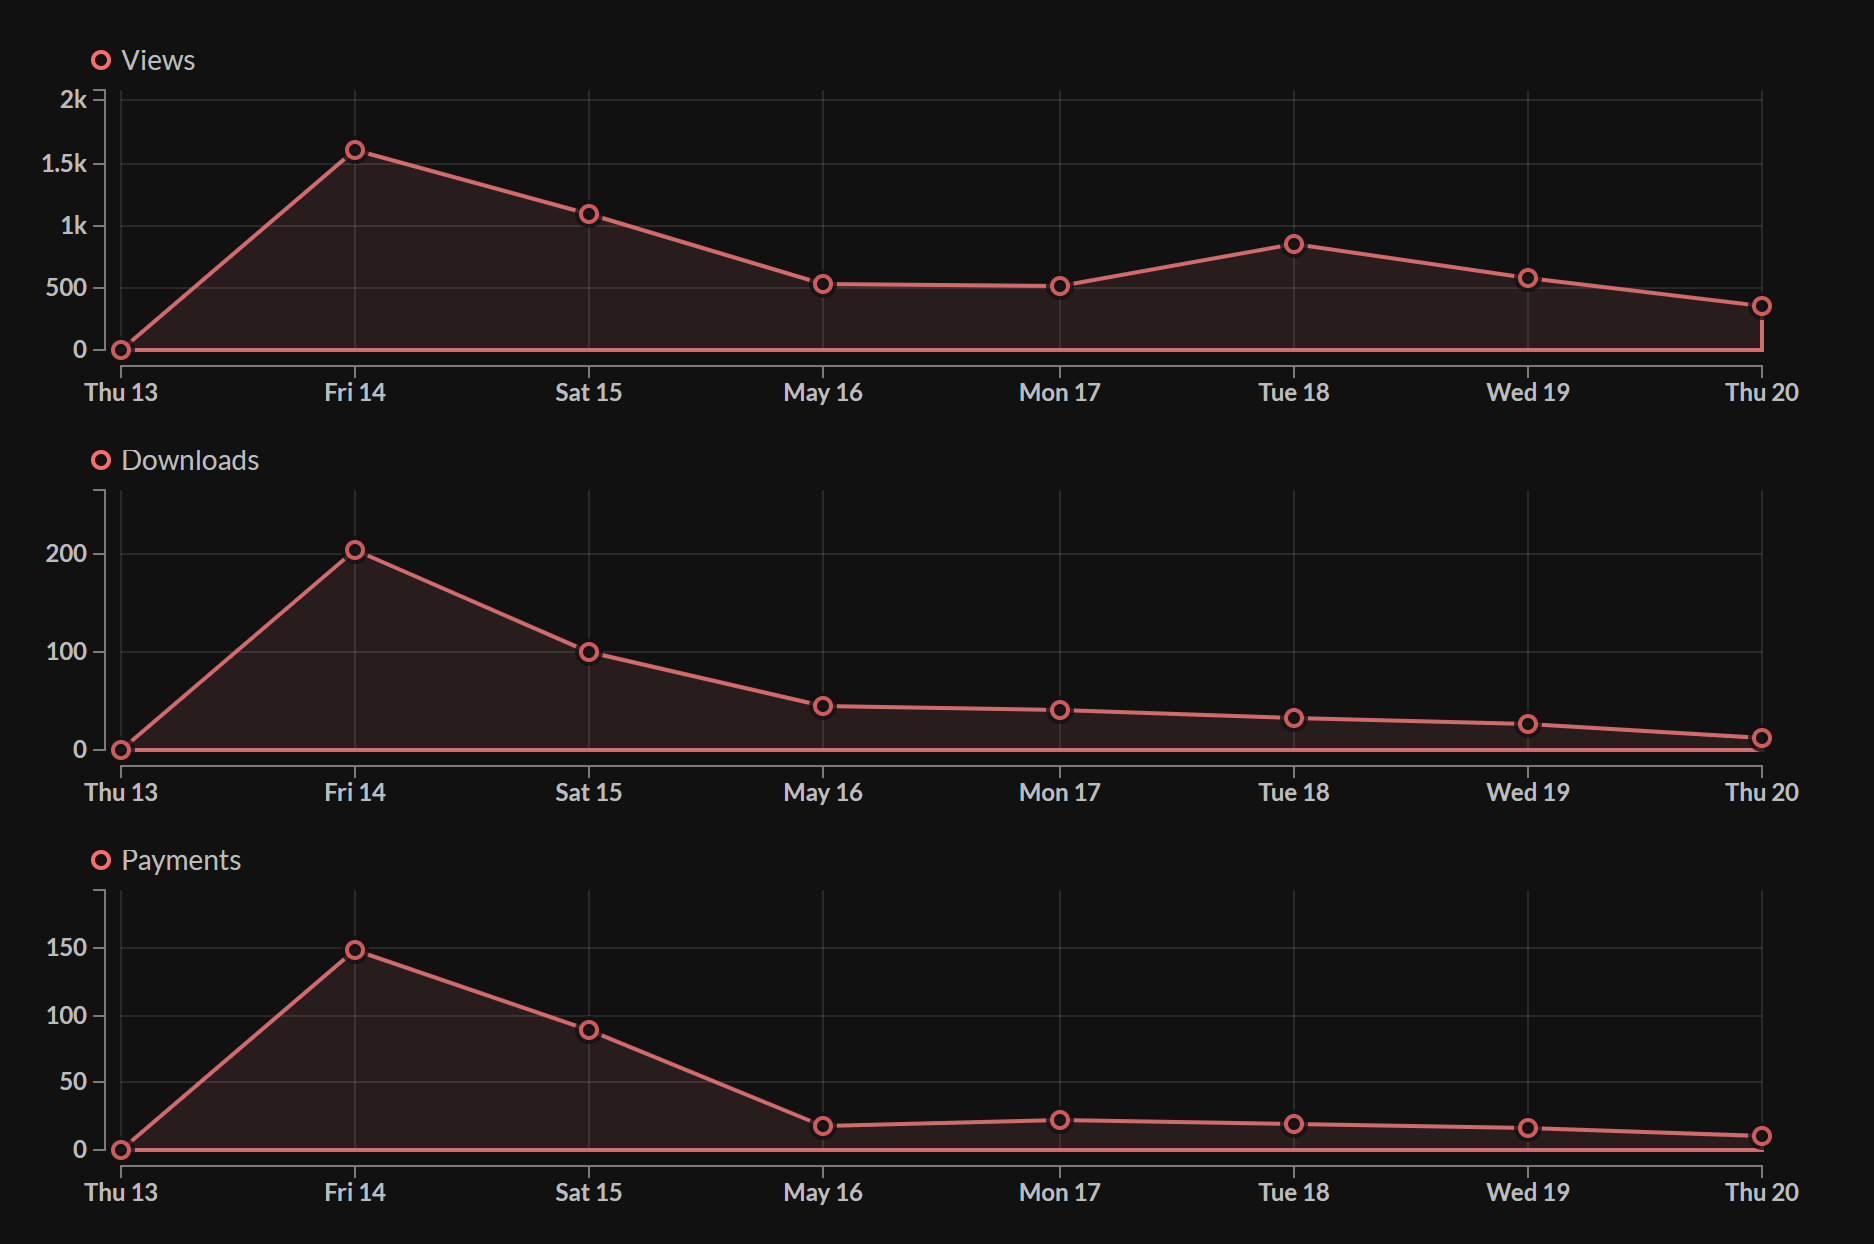 chart showing views, downloads, and payments, peaking on release day and steadily going down since